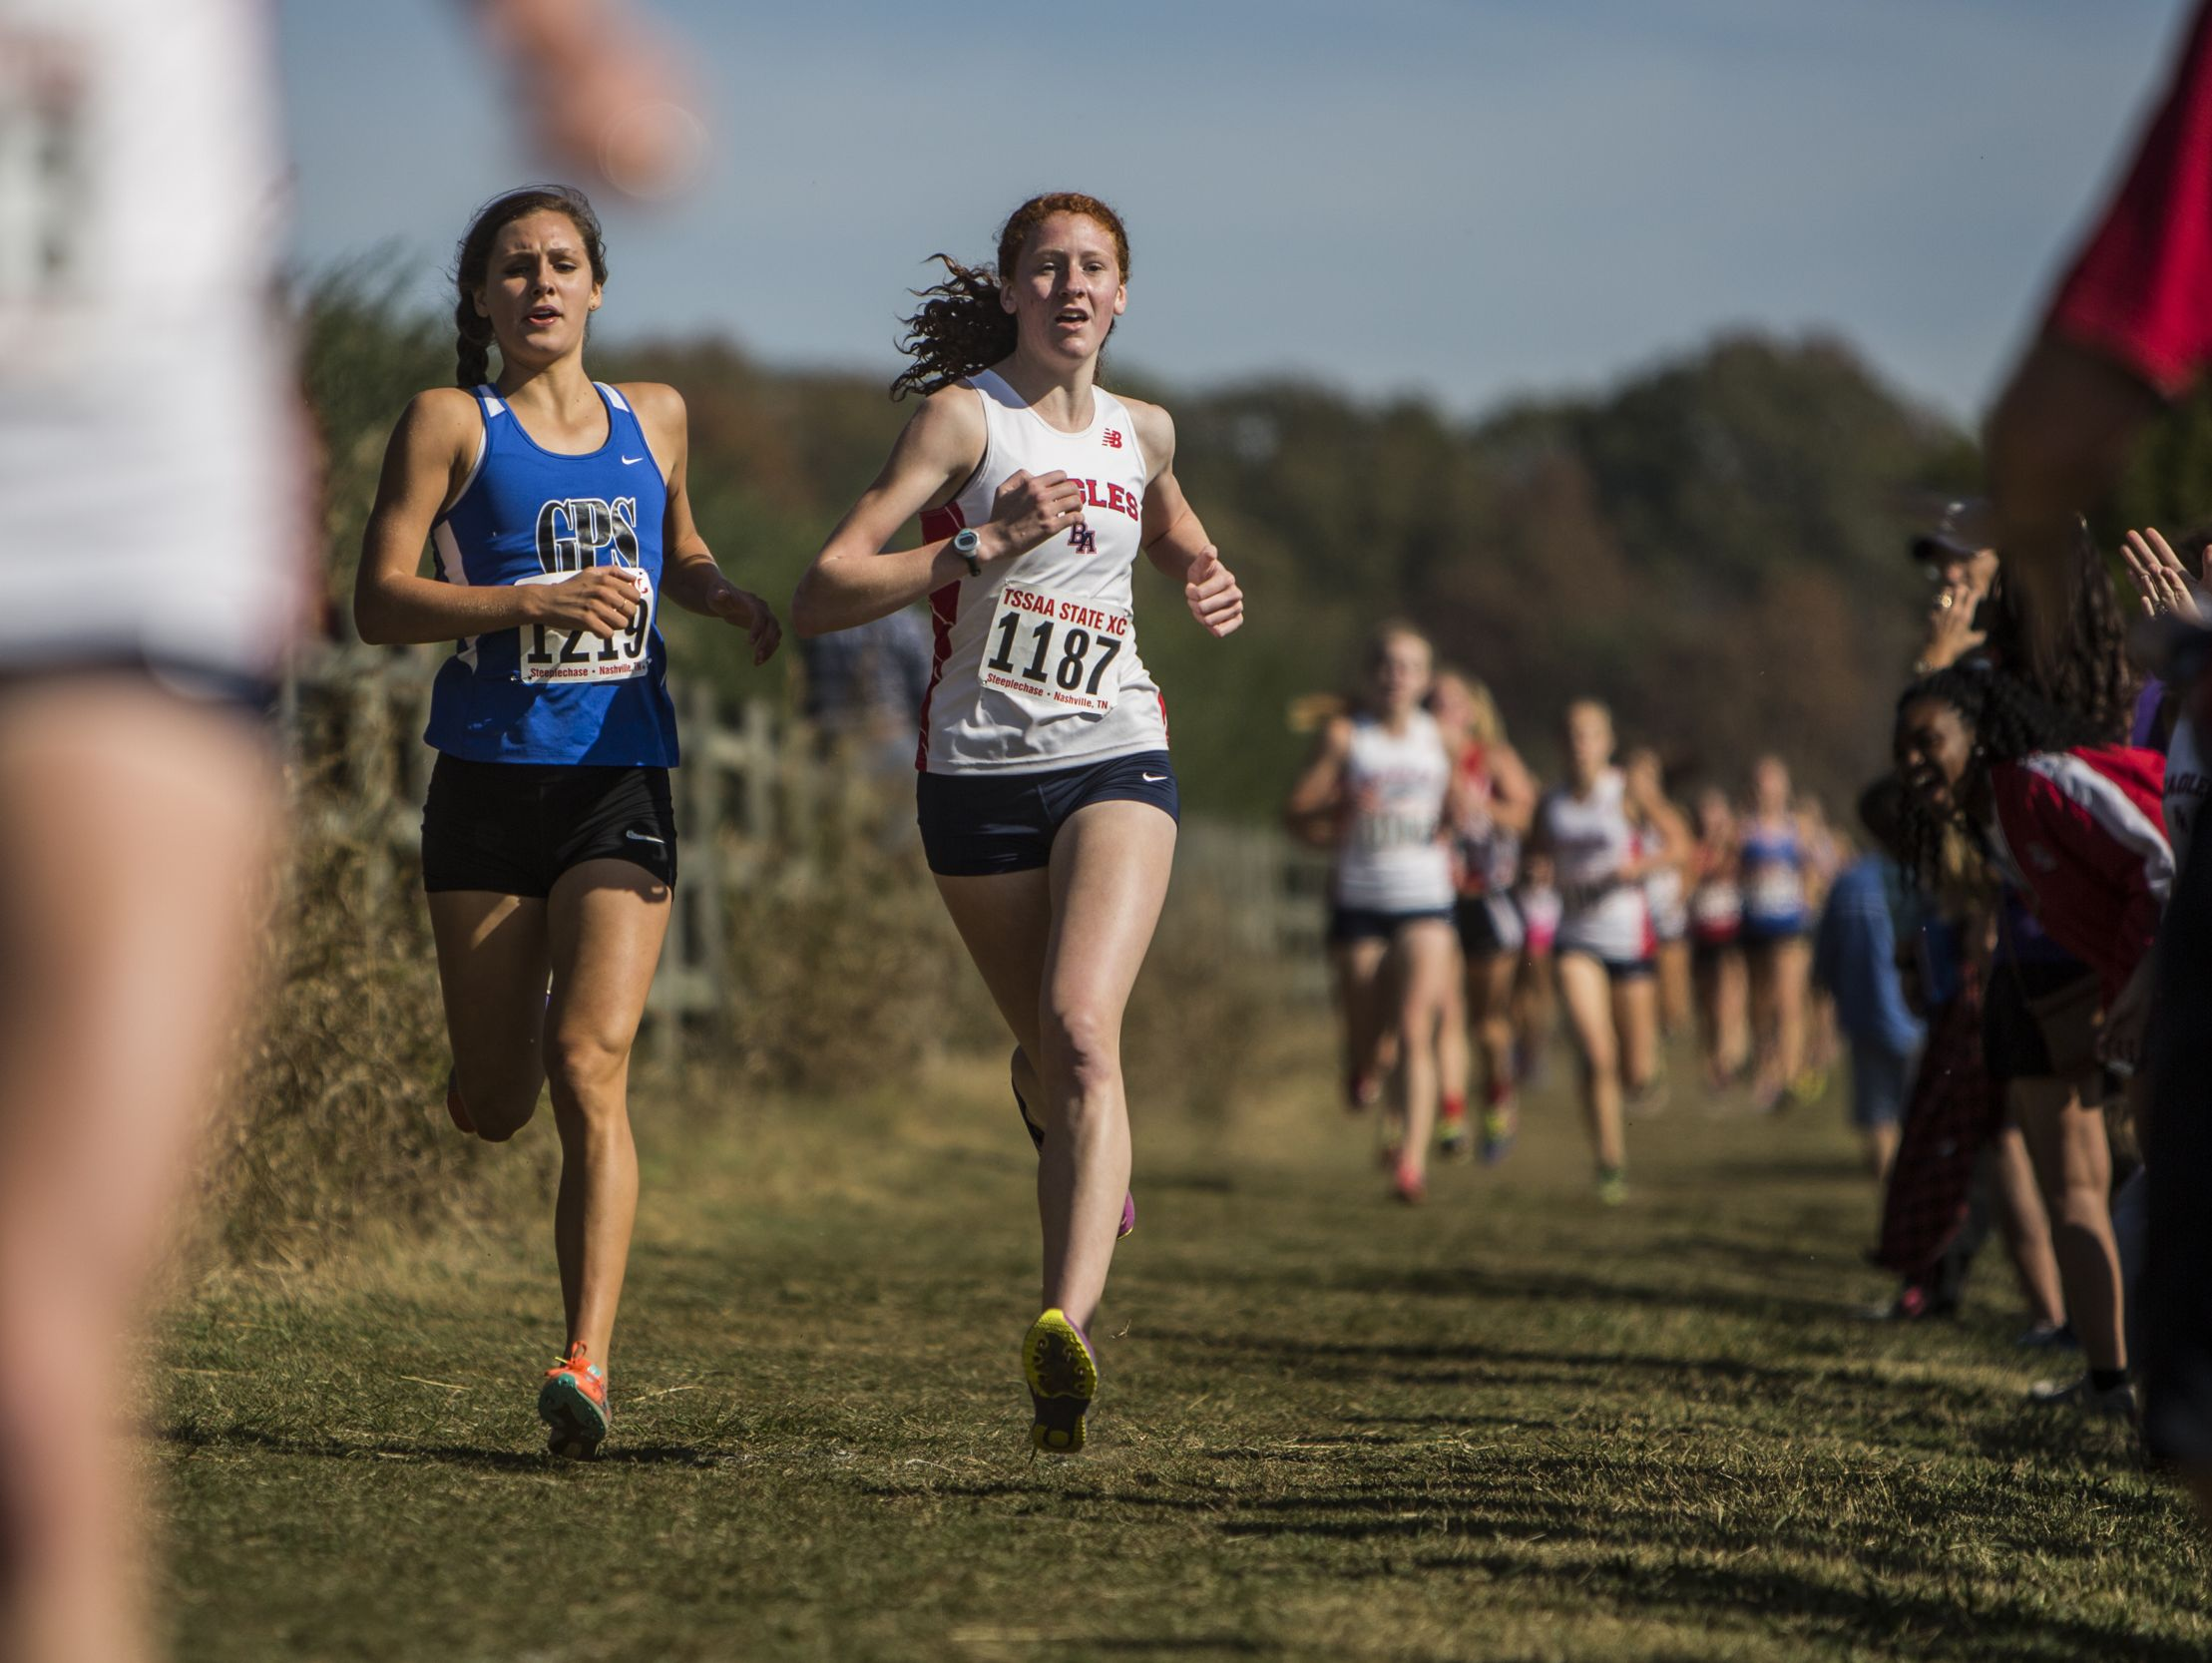 Carley Braman of GPS and Meredith Helton of Brentwood Academy run during the 2016 TSSAA State Cross Country Championship at Percy Warner Park.